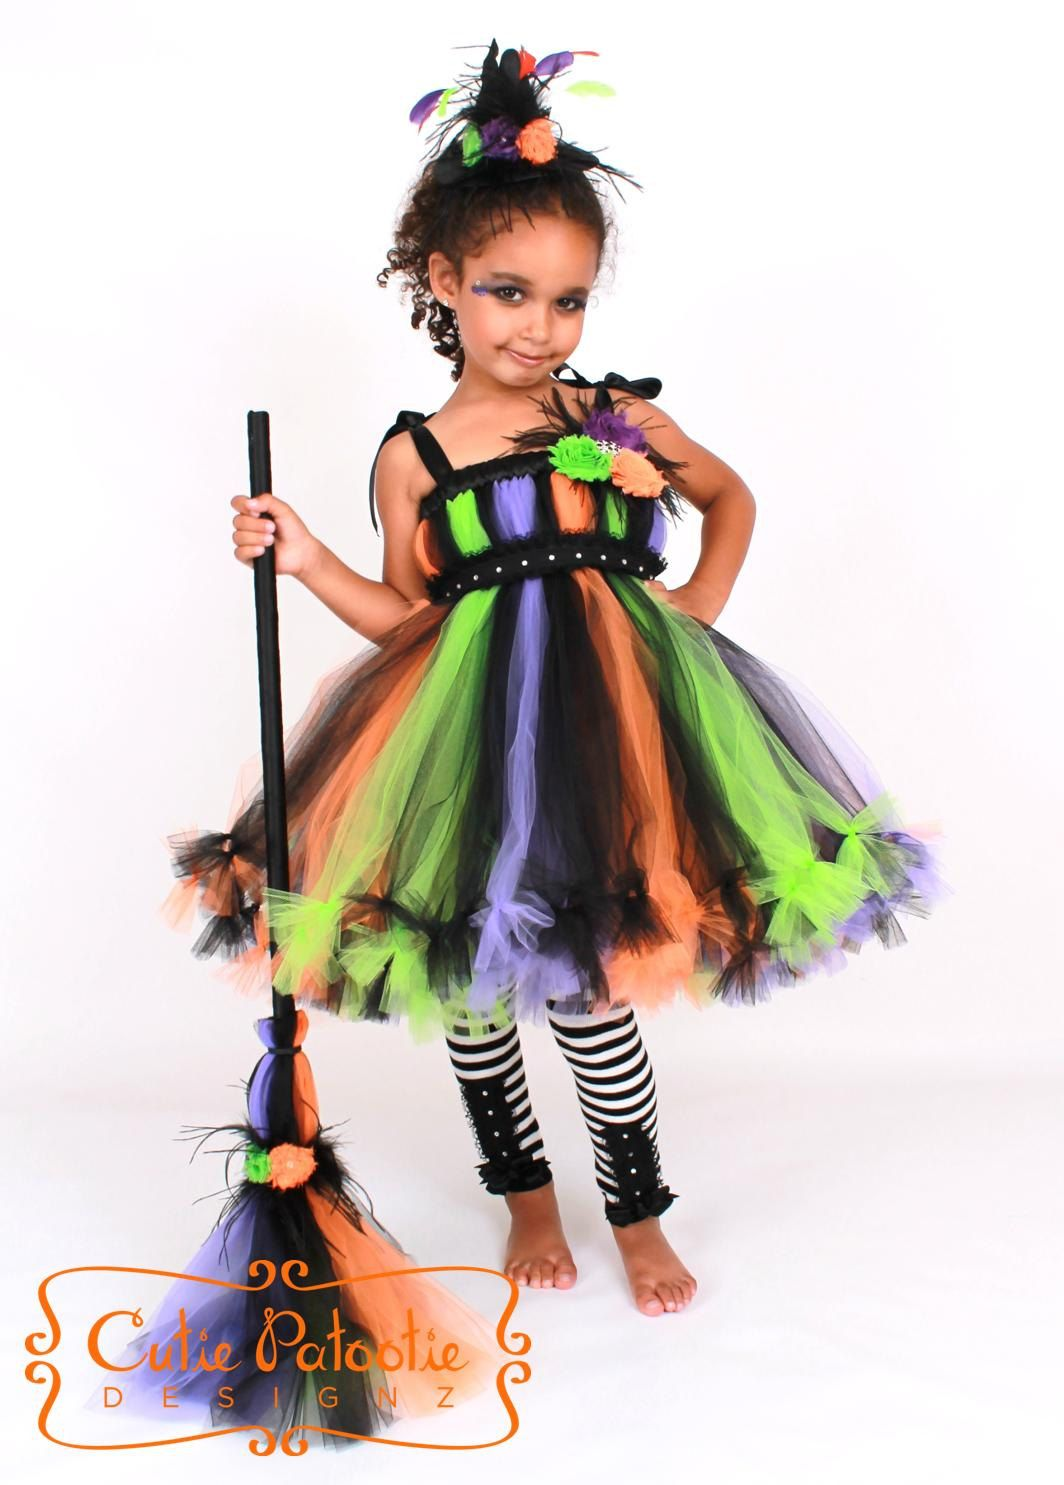 Pin by Kerri Donnelly on Halloween | Pinterest | So cute, Costumes ...